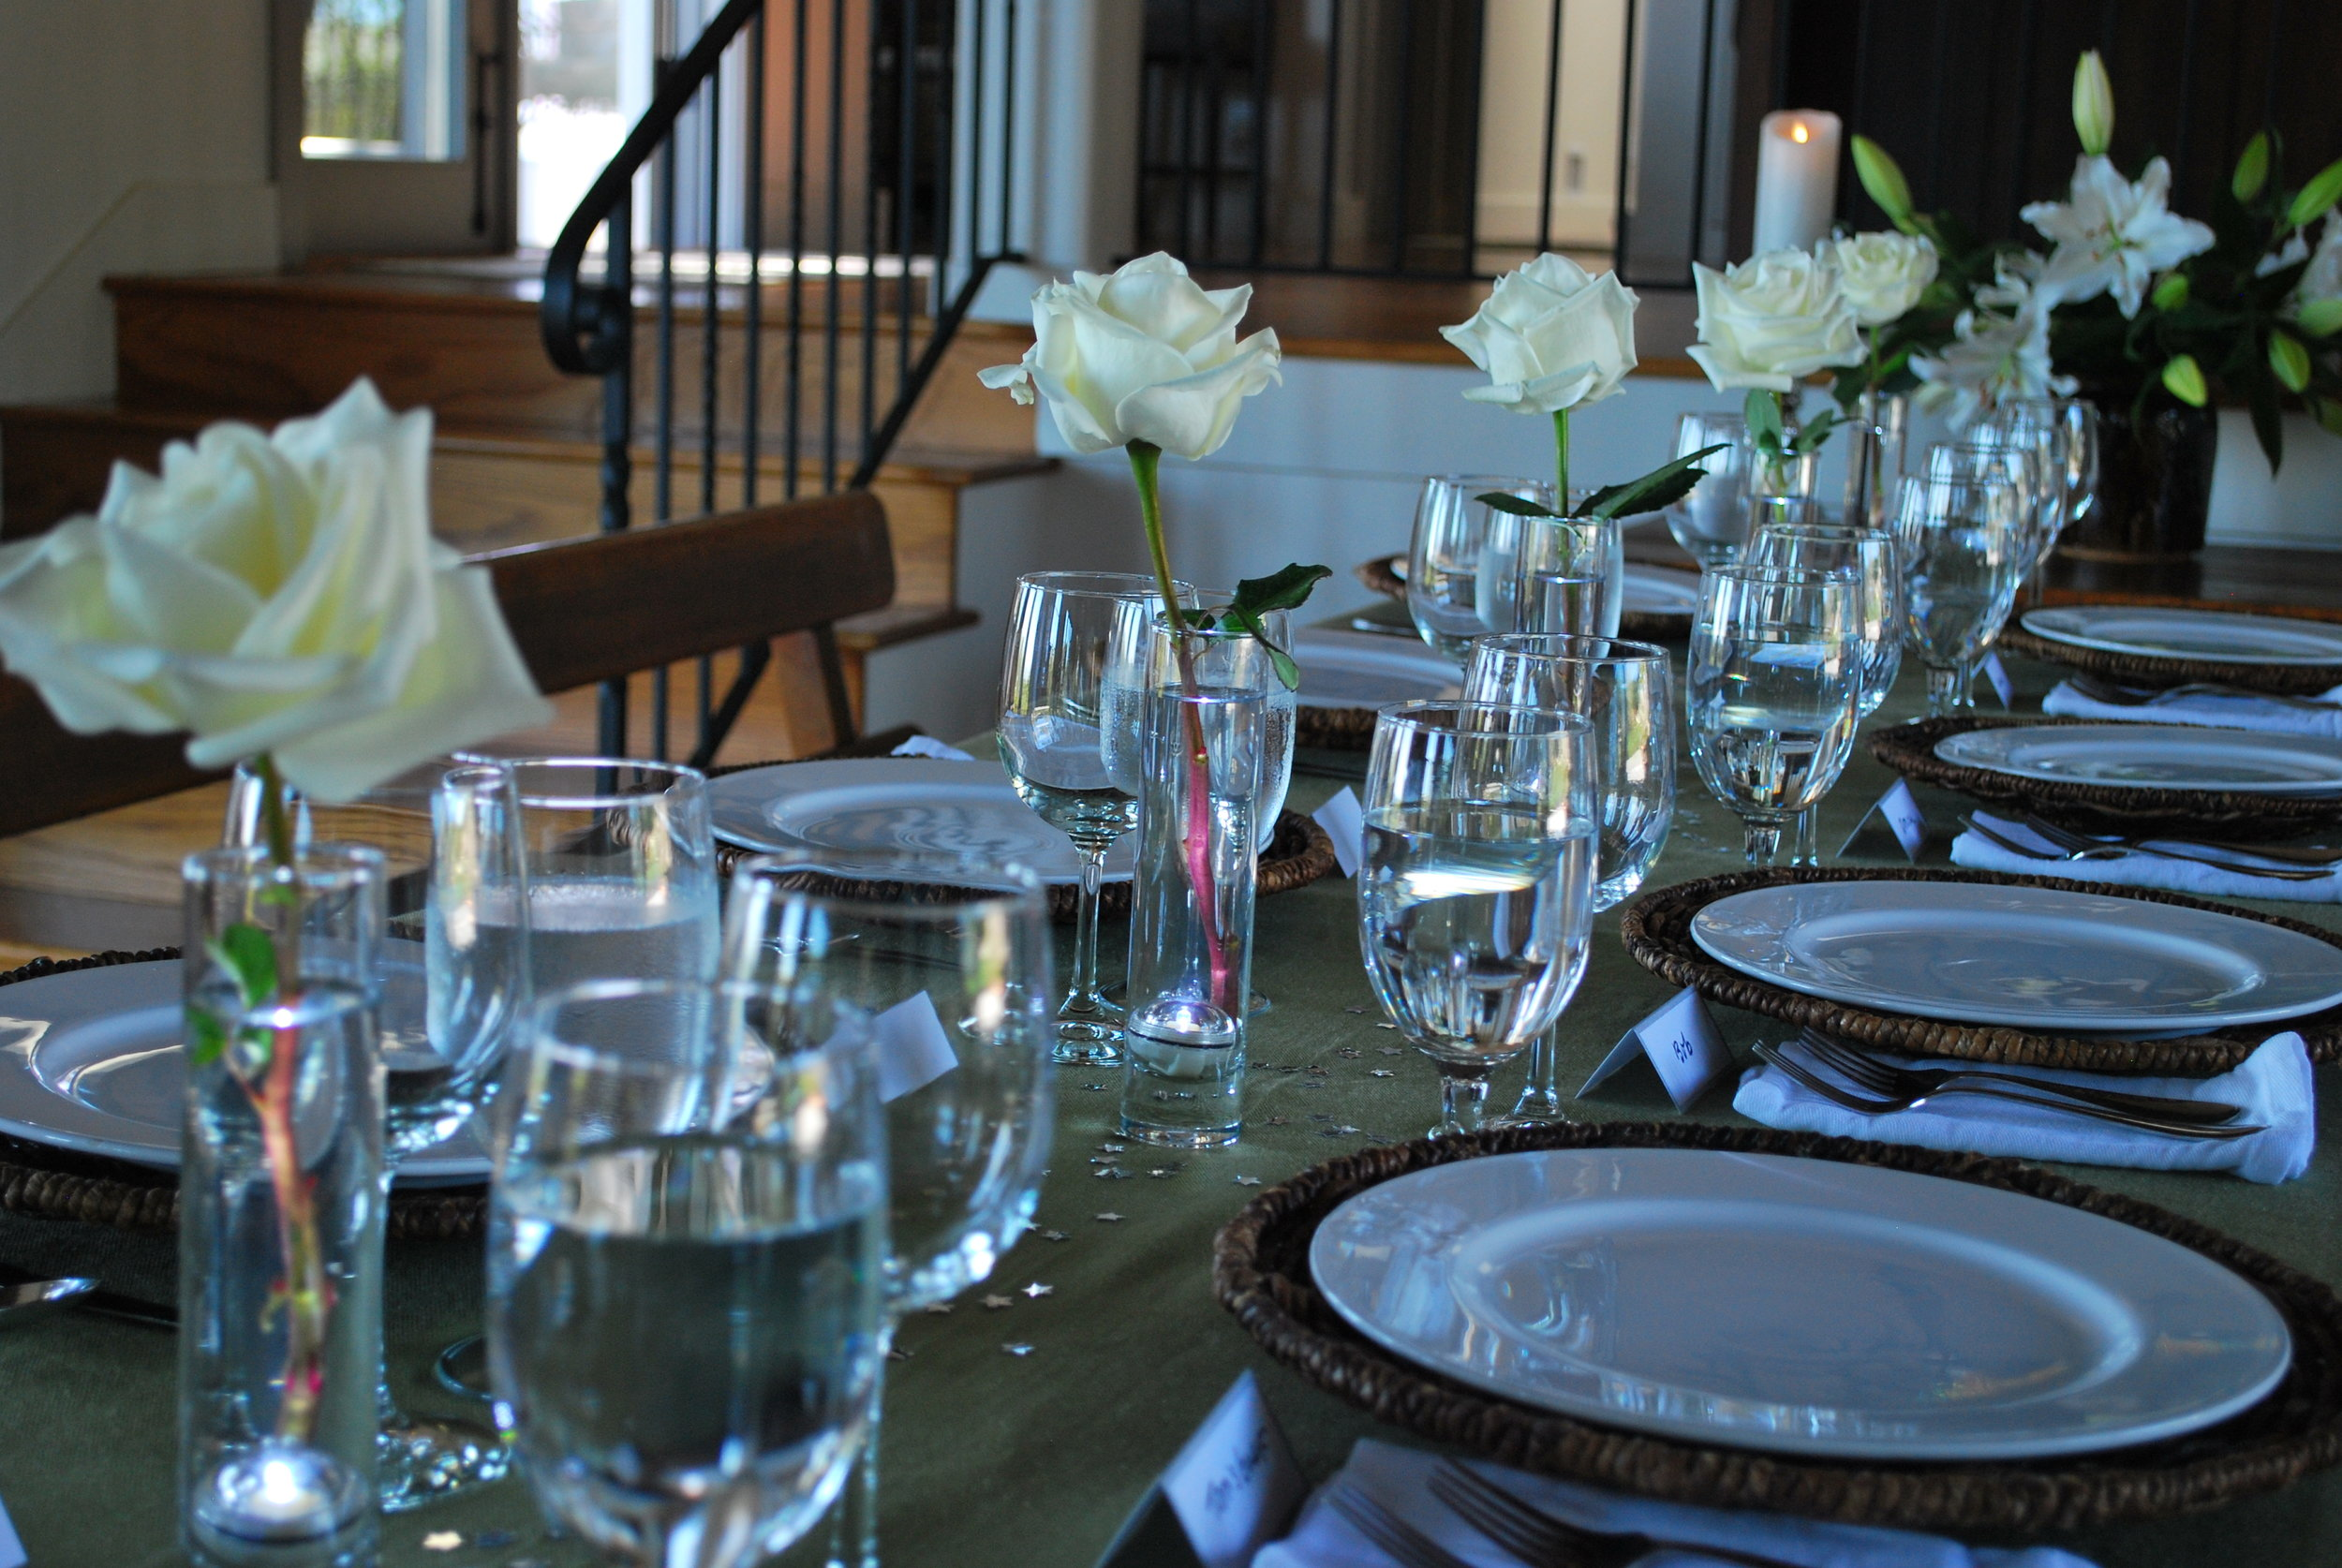 The Table is Set for You!